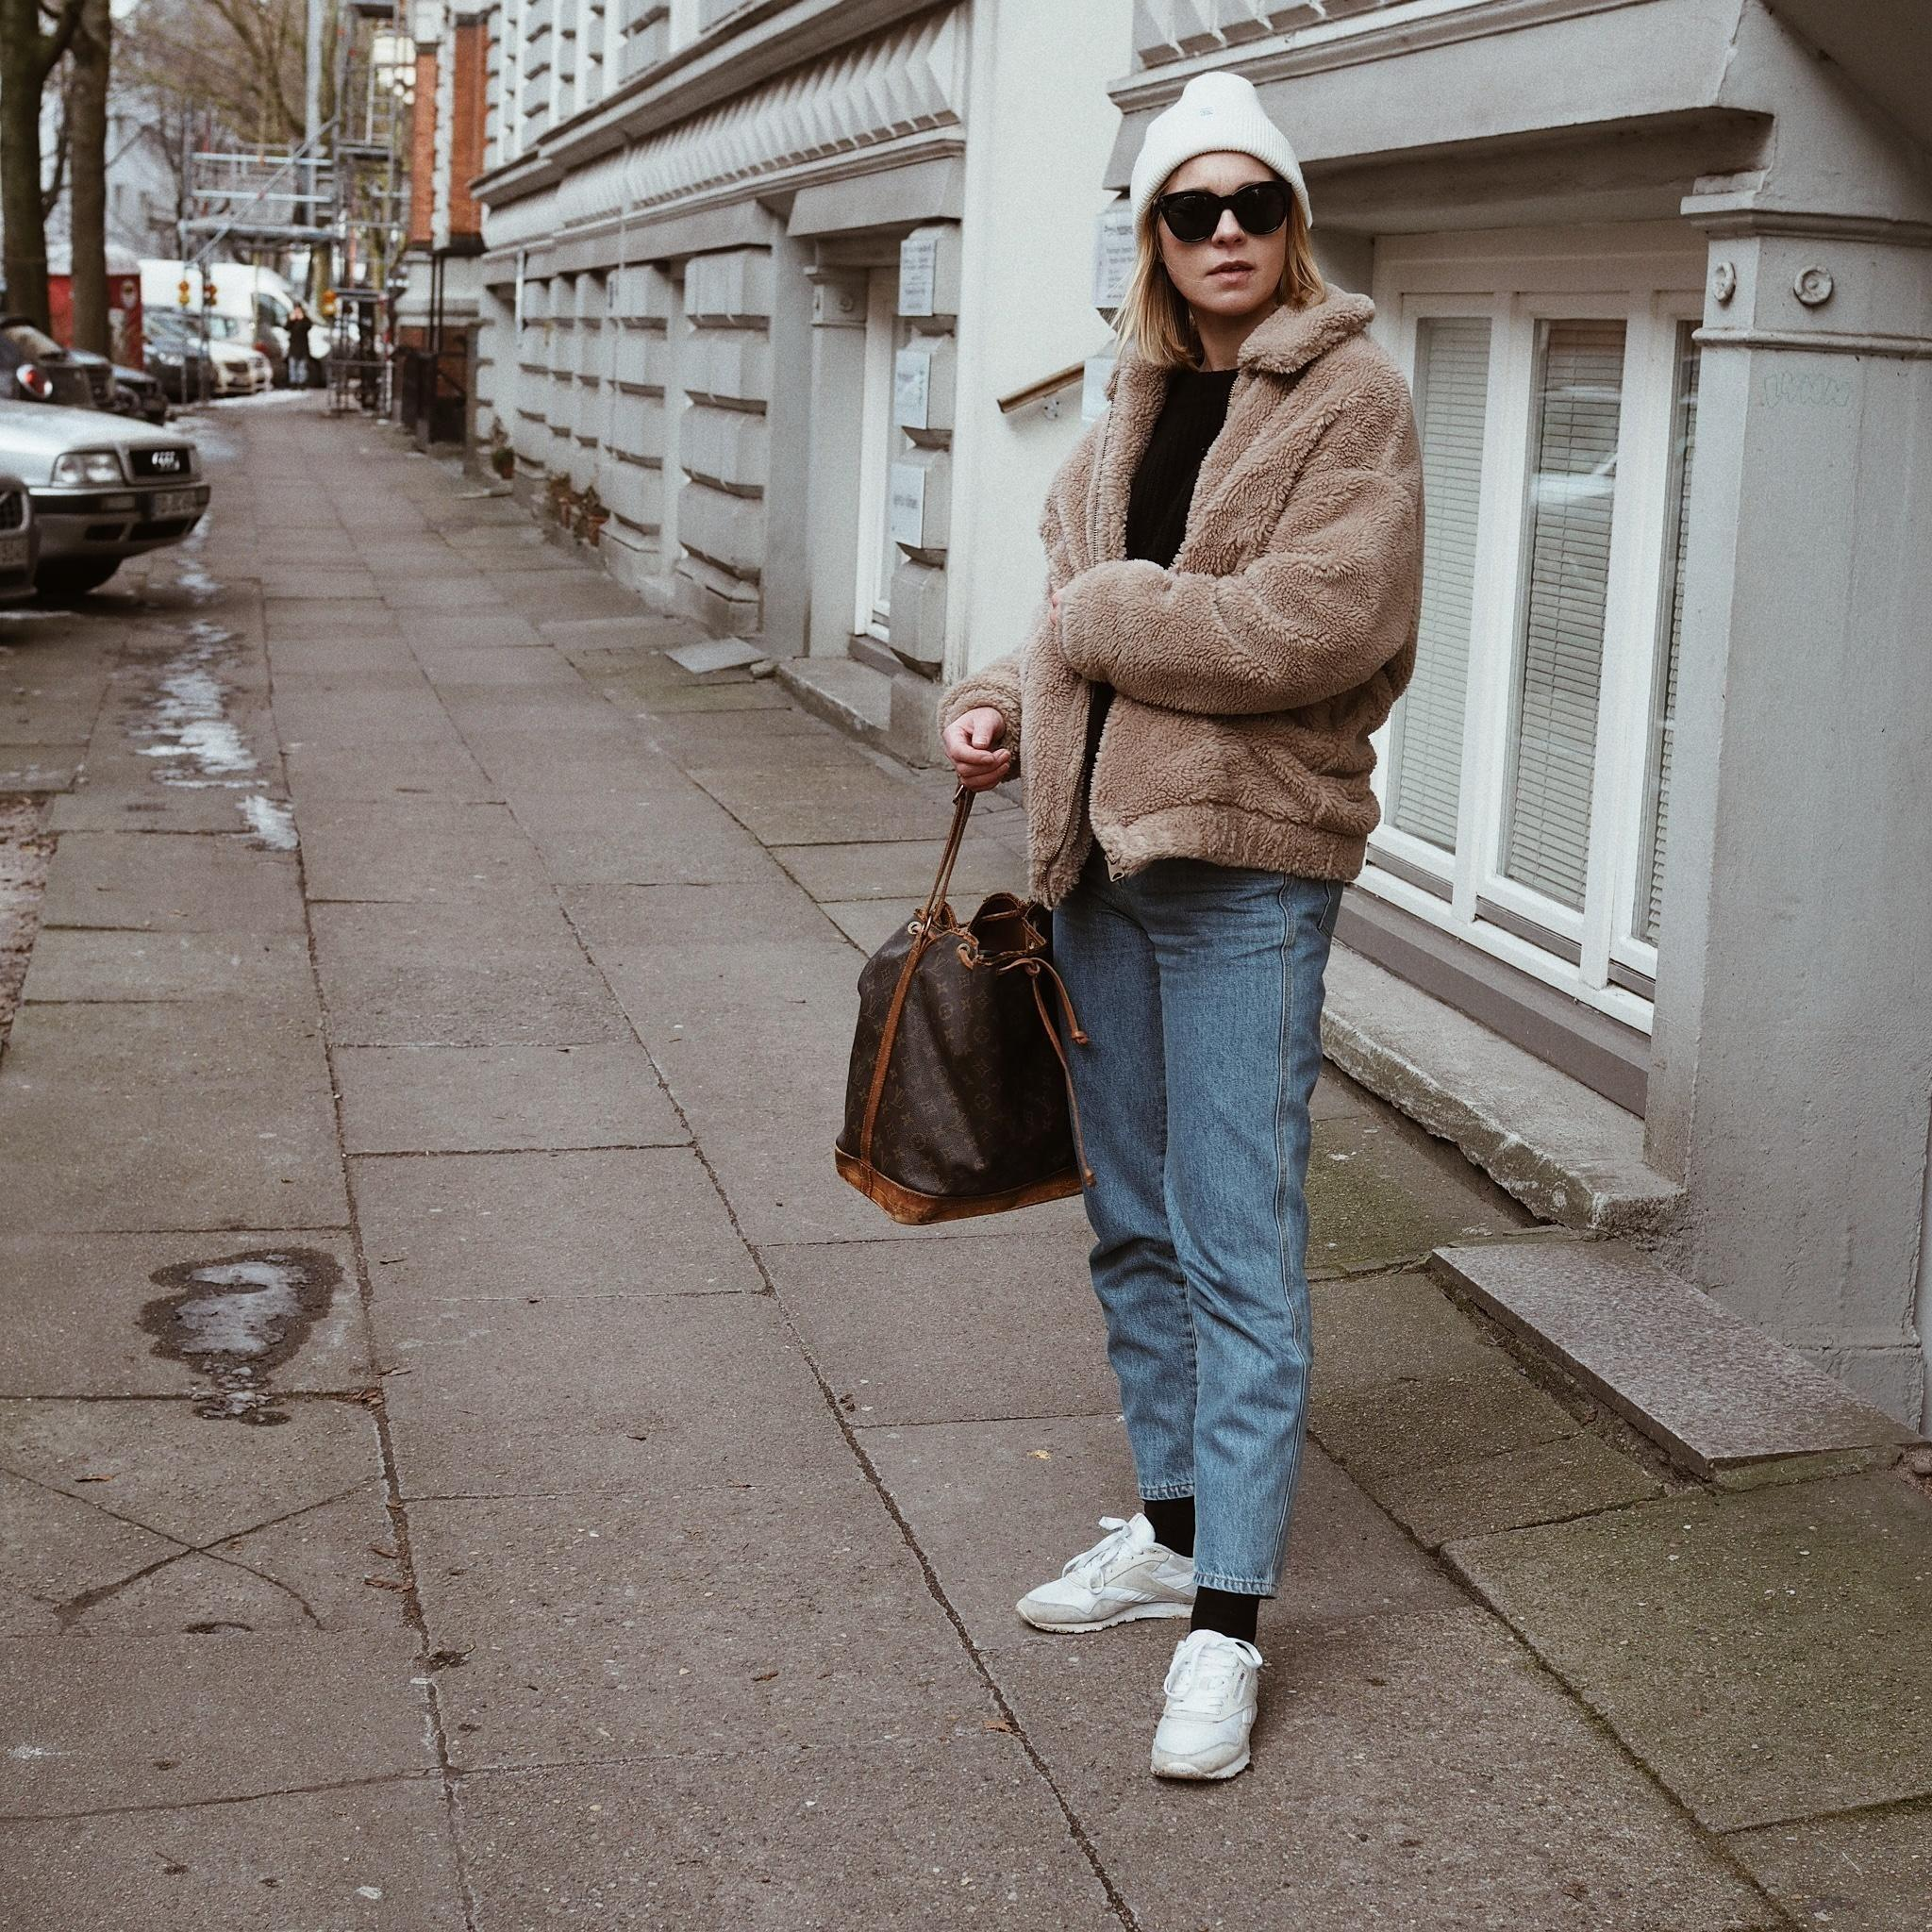 Streetstyle  outfitinspiration outfit teddycoat sneakerlove  61c1e041 319b 429c 9feb 35d37f5de2b1